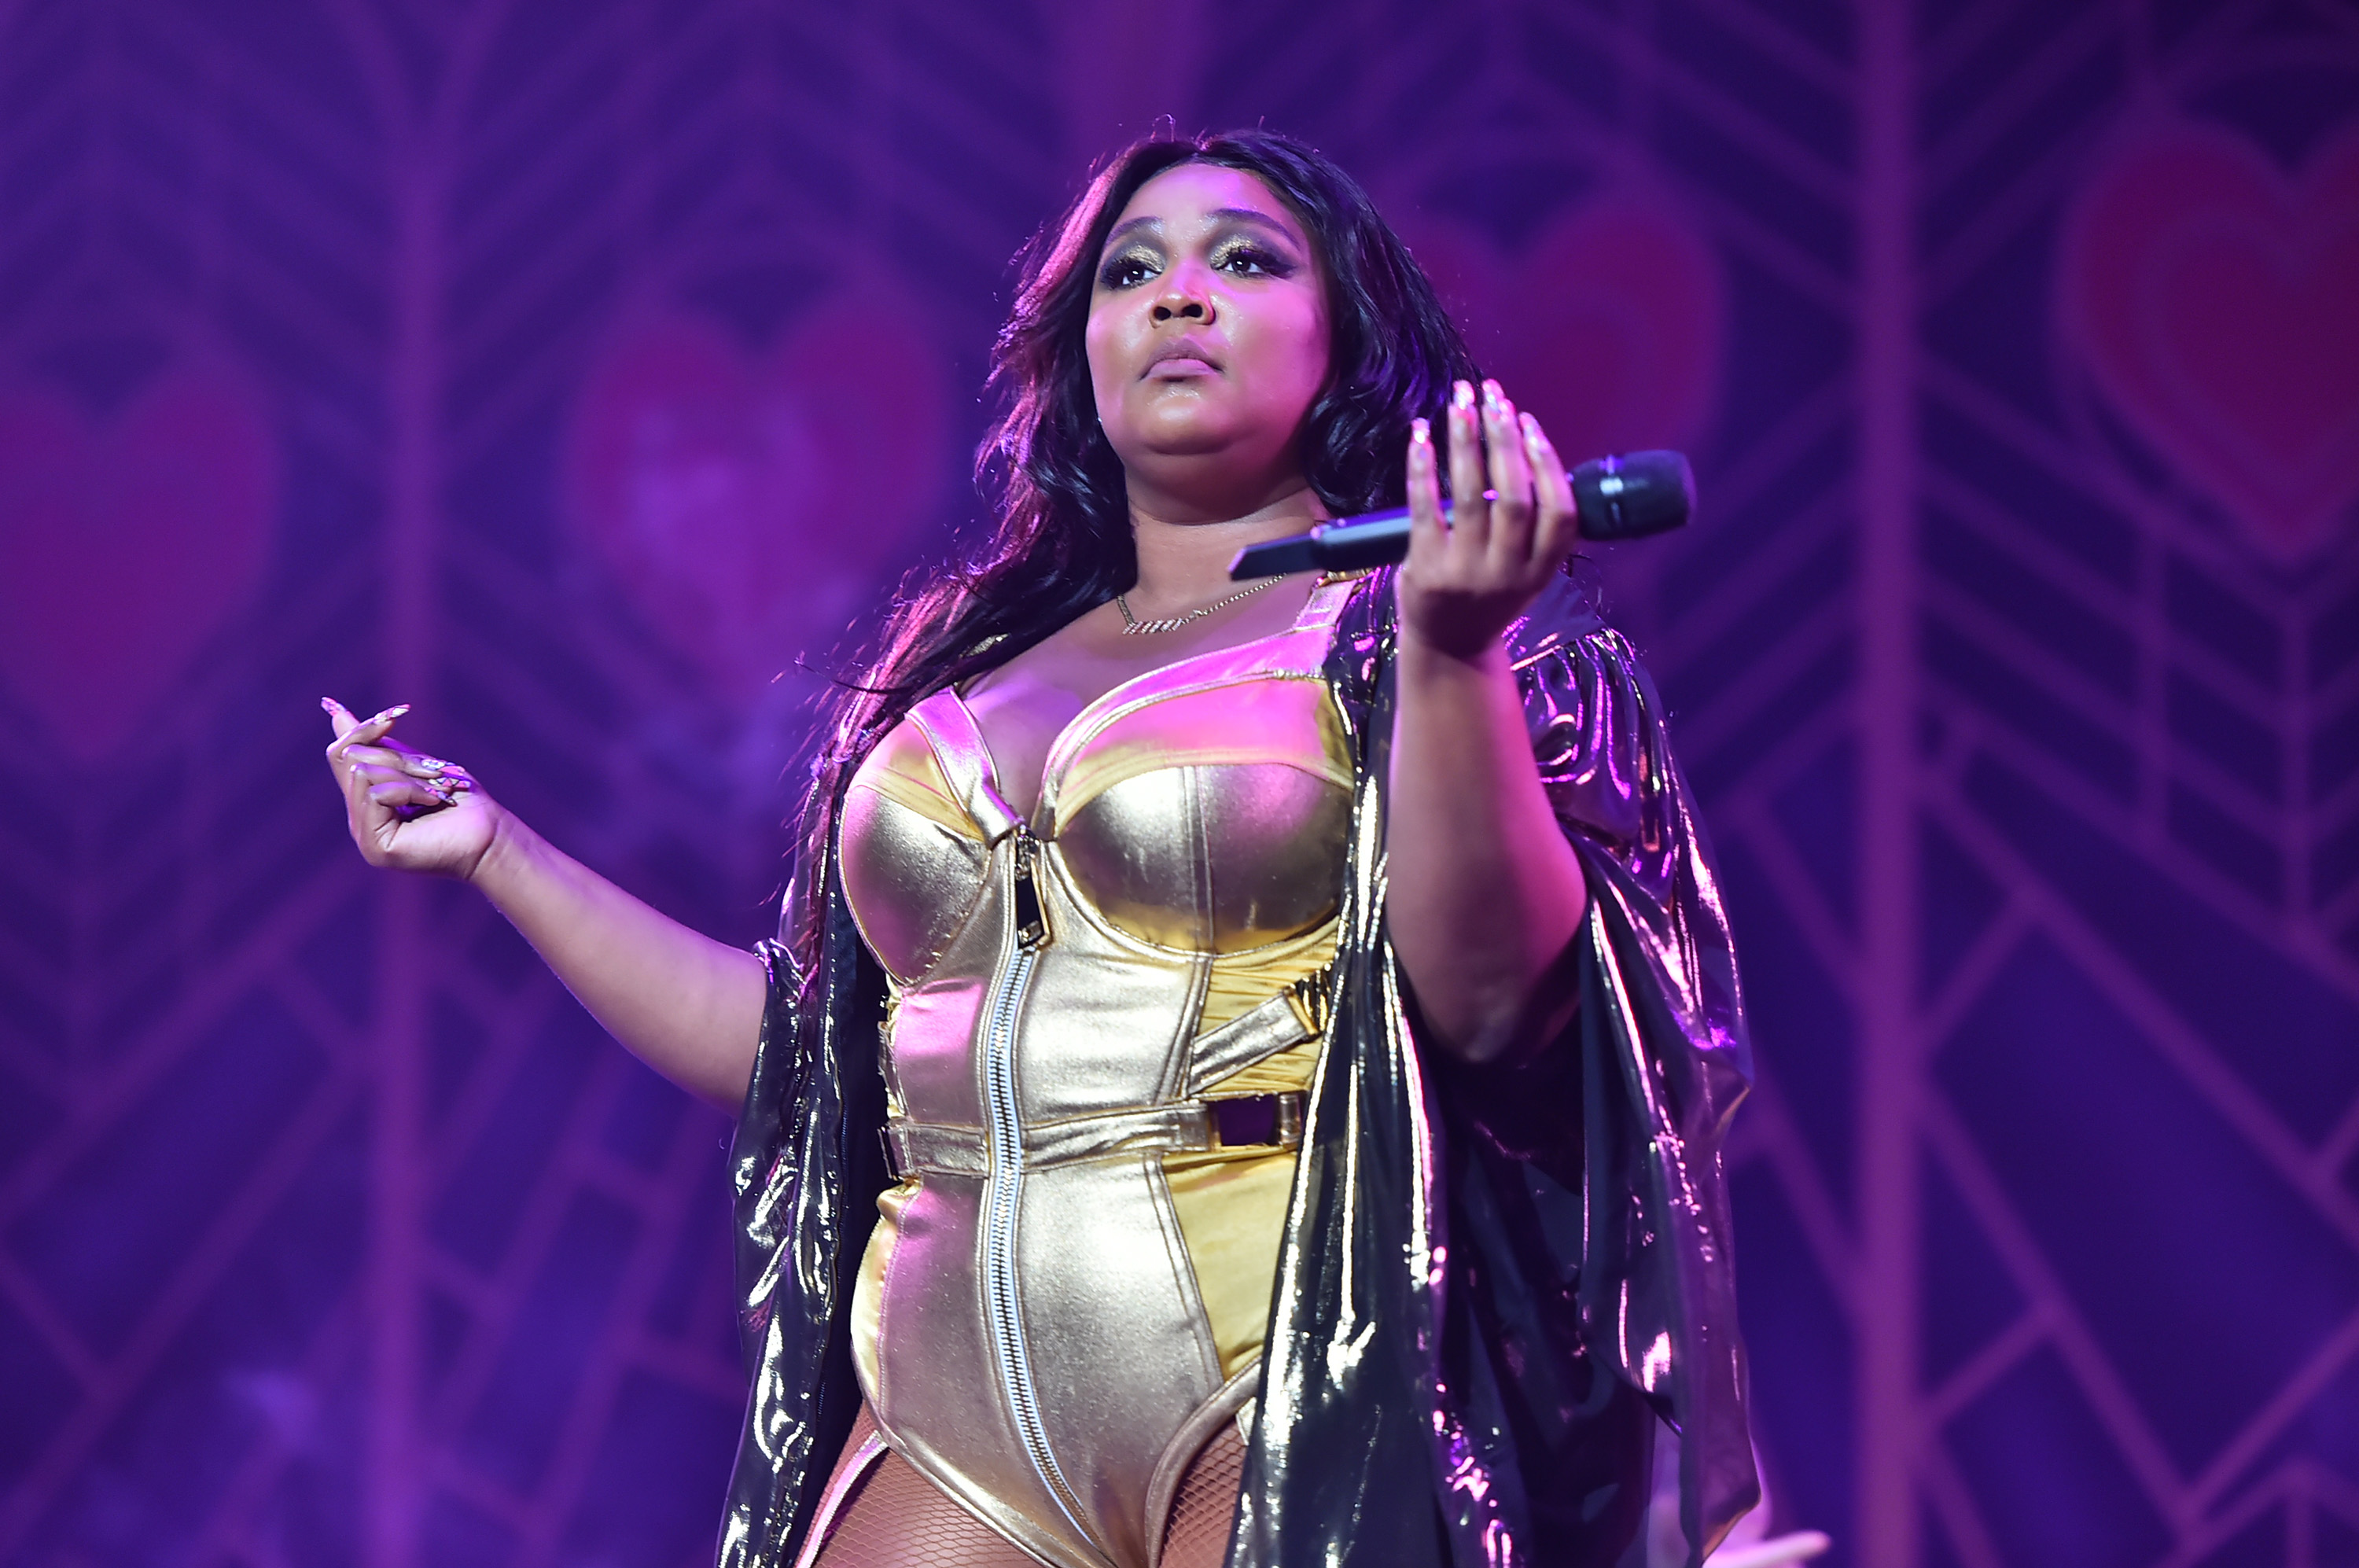 This is her year: Lizzo's music career from dreamer to Grammy-nominated artist